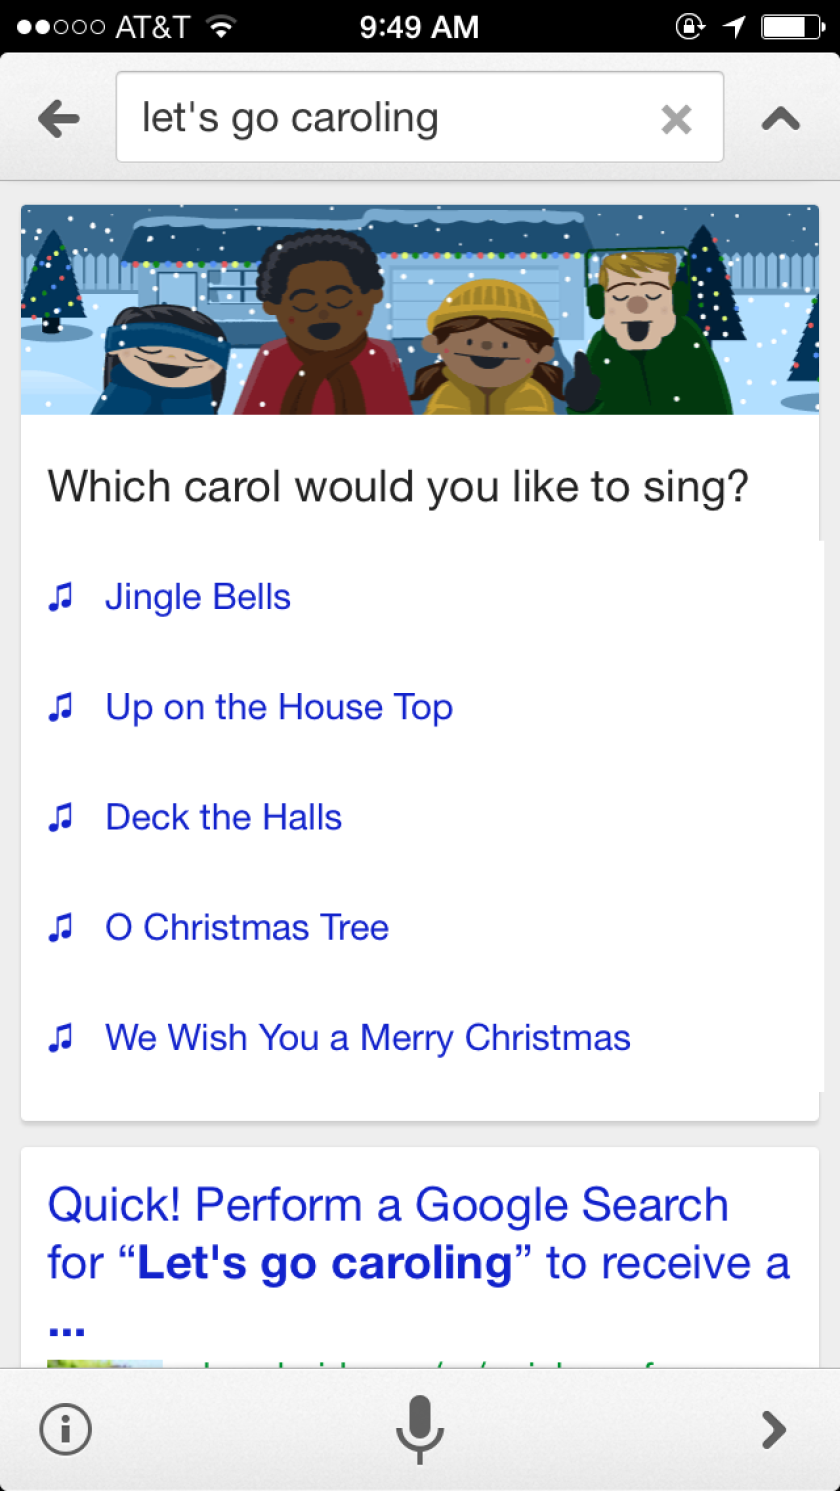 Google has added a neat feature to its mobile apps that users can activate to go Christmas caroling.